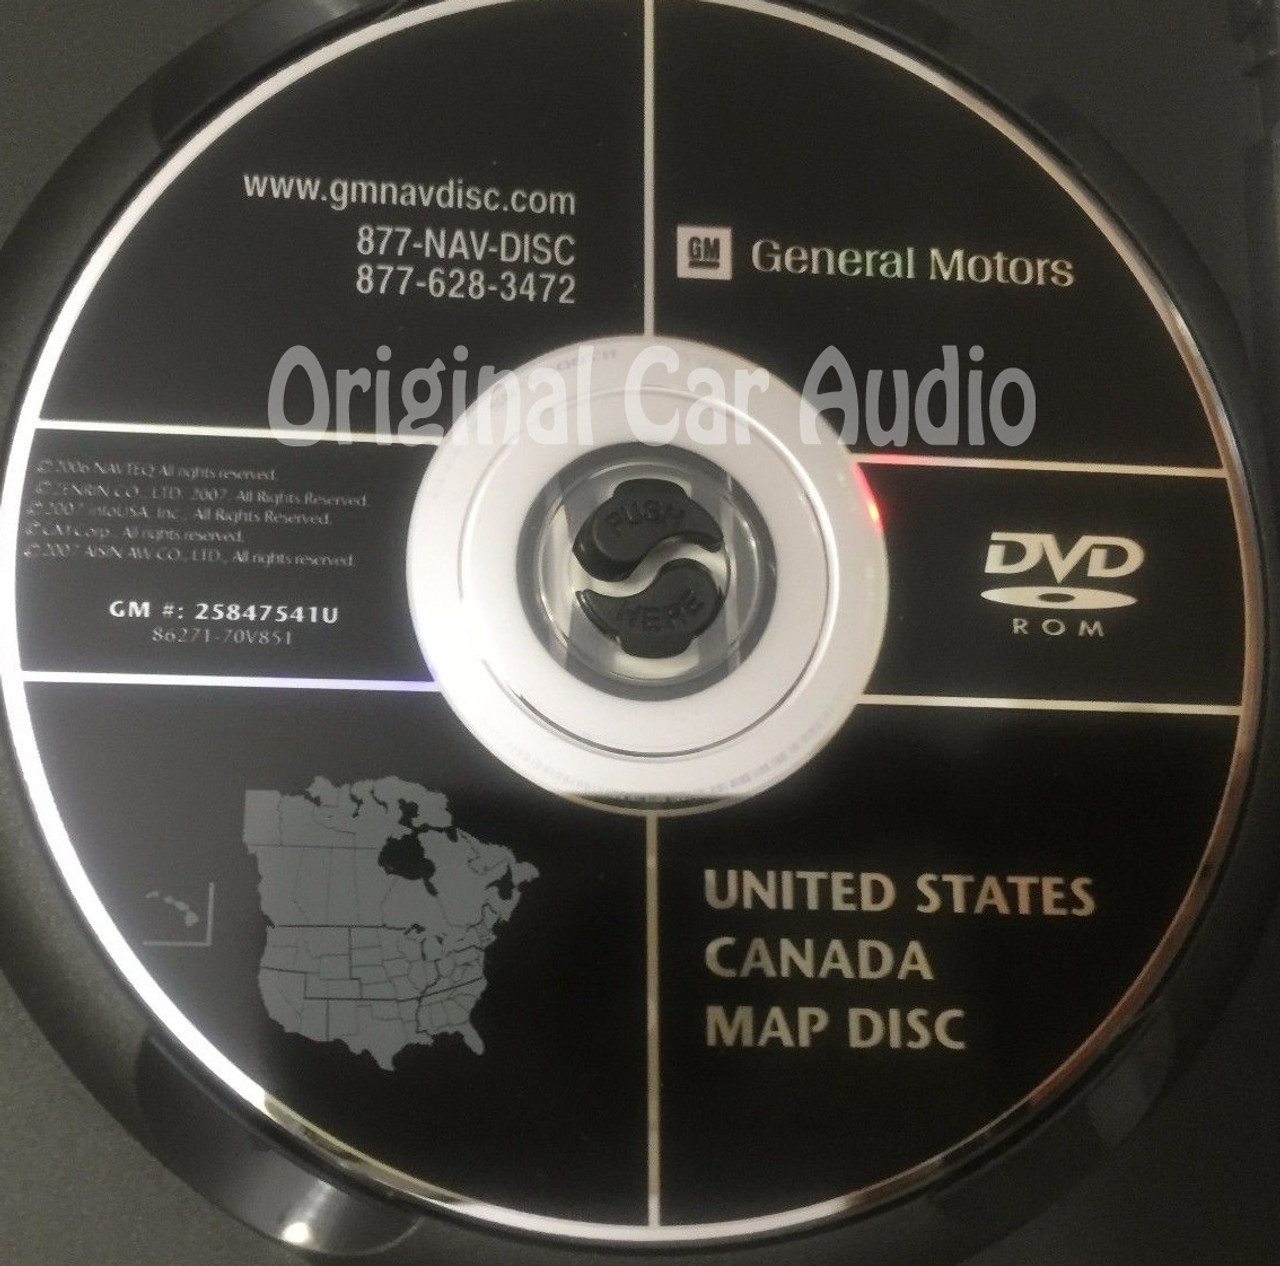 GM Satellite Navigation System CD 25847541 or 25847541U - CD4Car